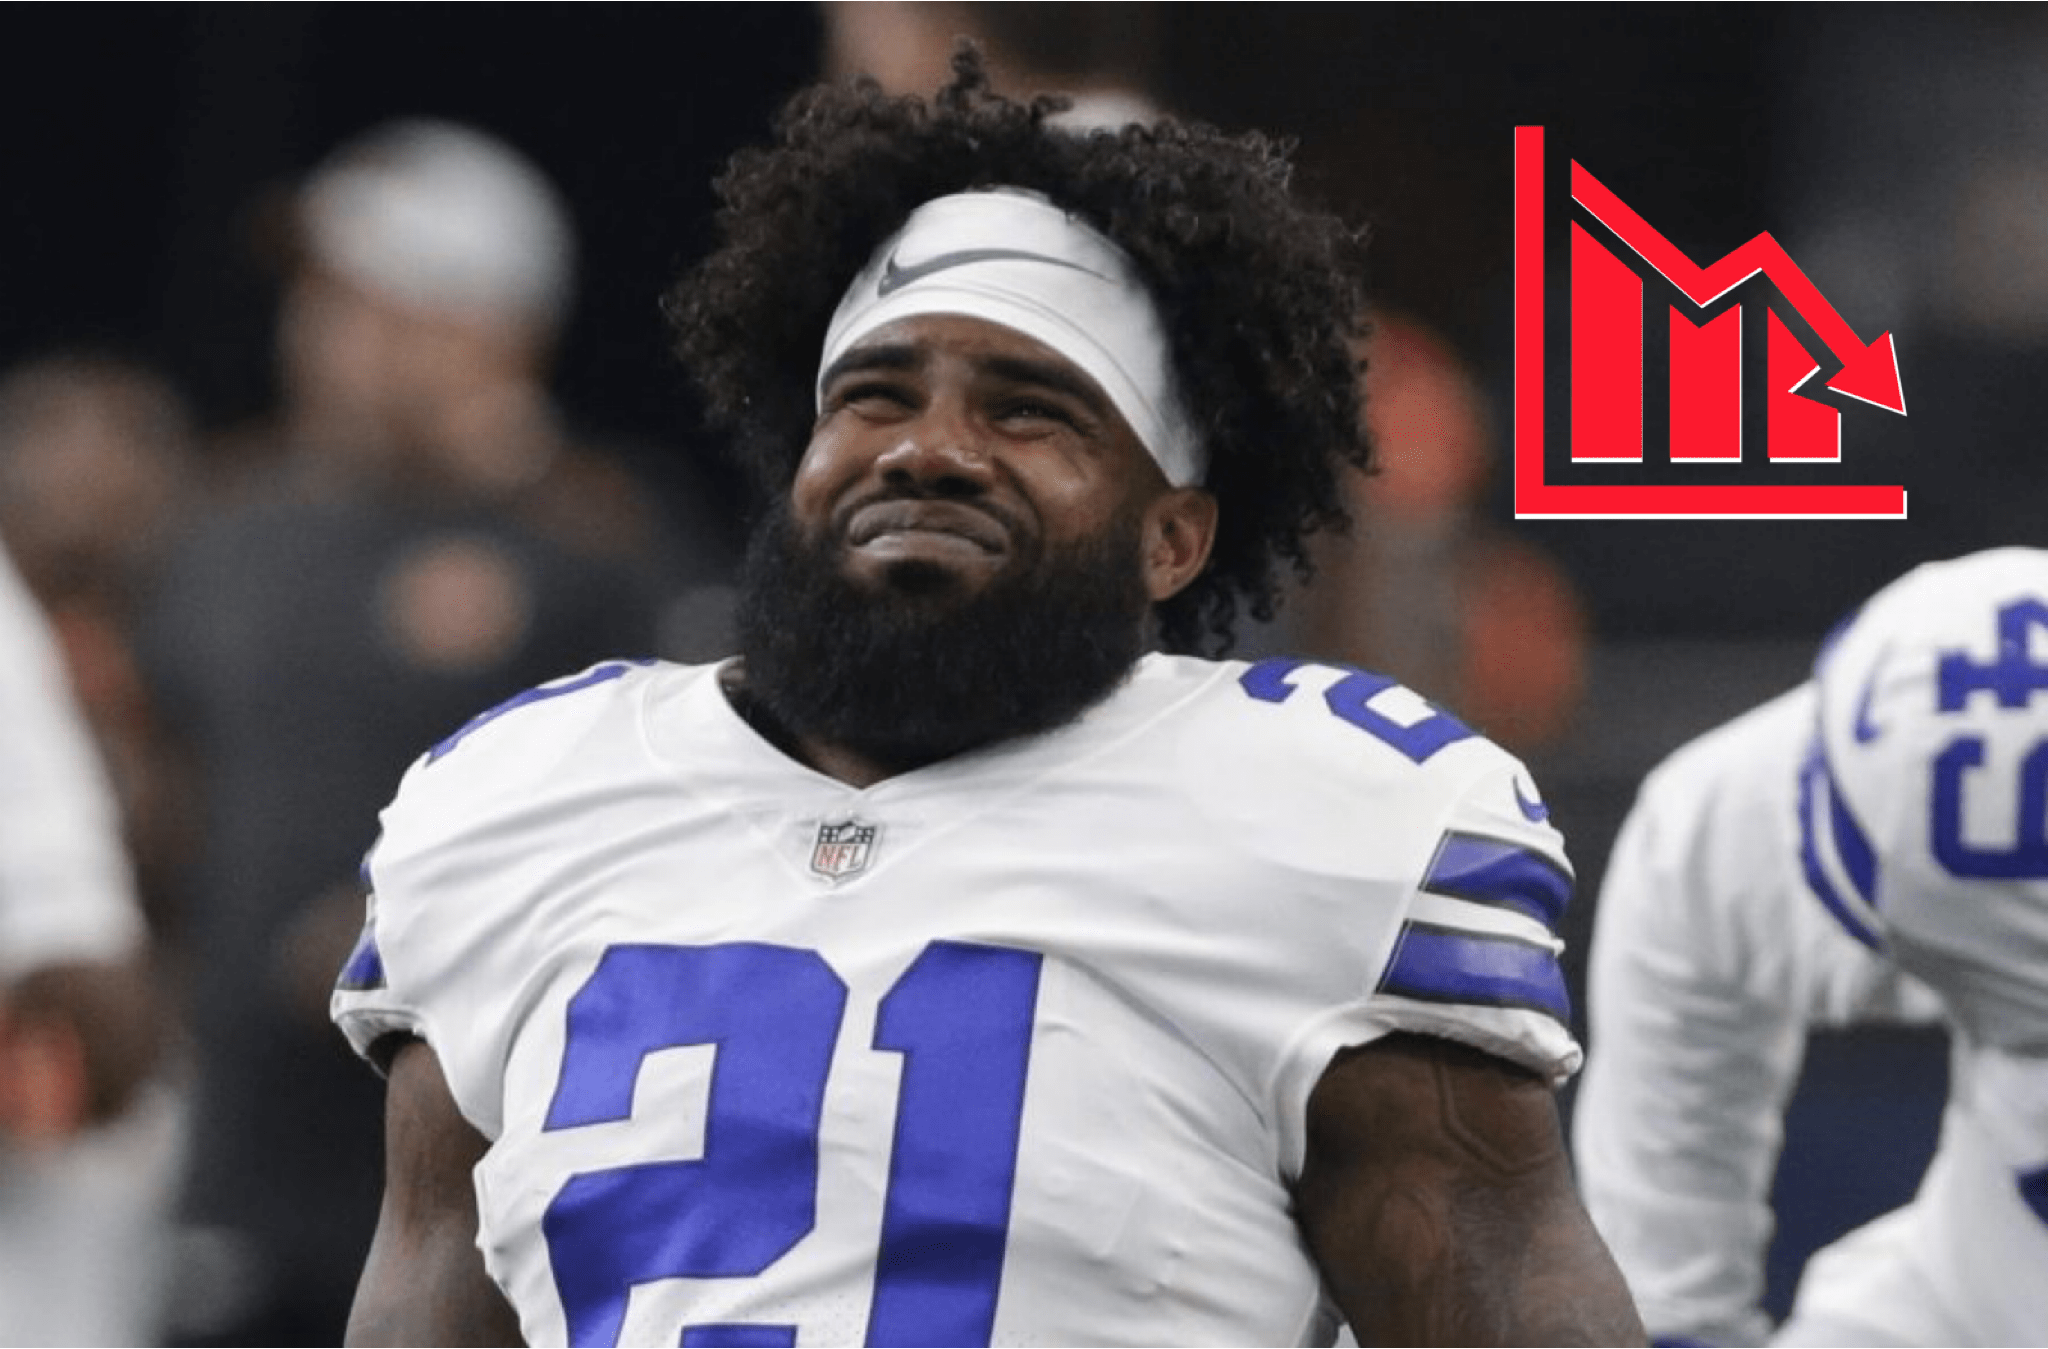 8a29326e The Three Step Guide to Dominate Fantasy Football in 2019 - Roto ...